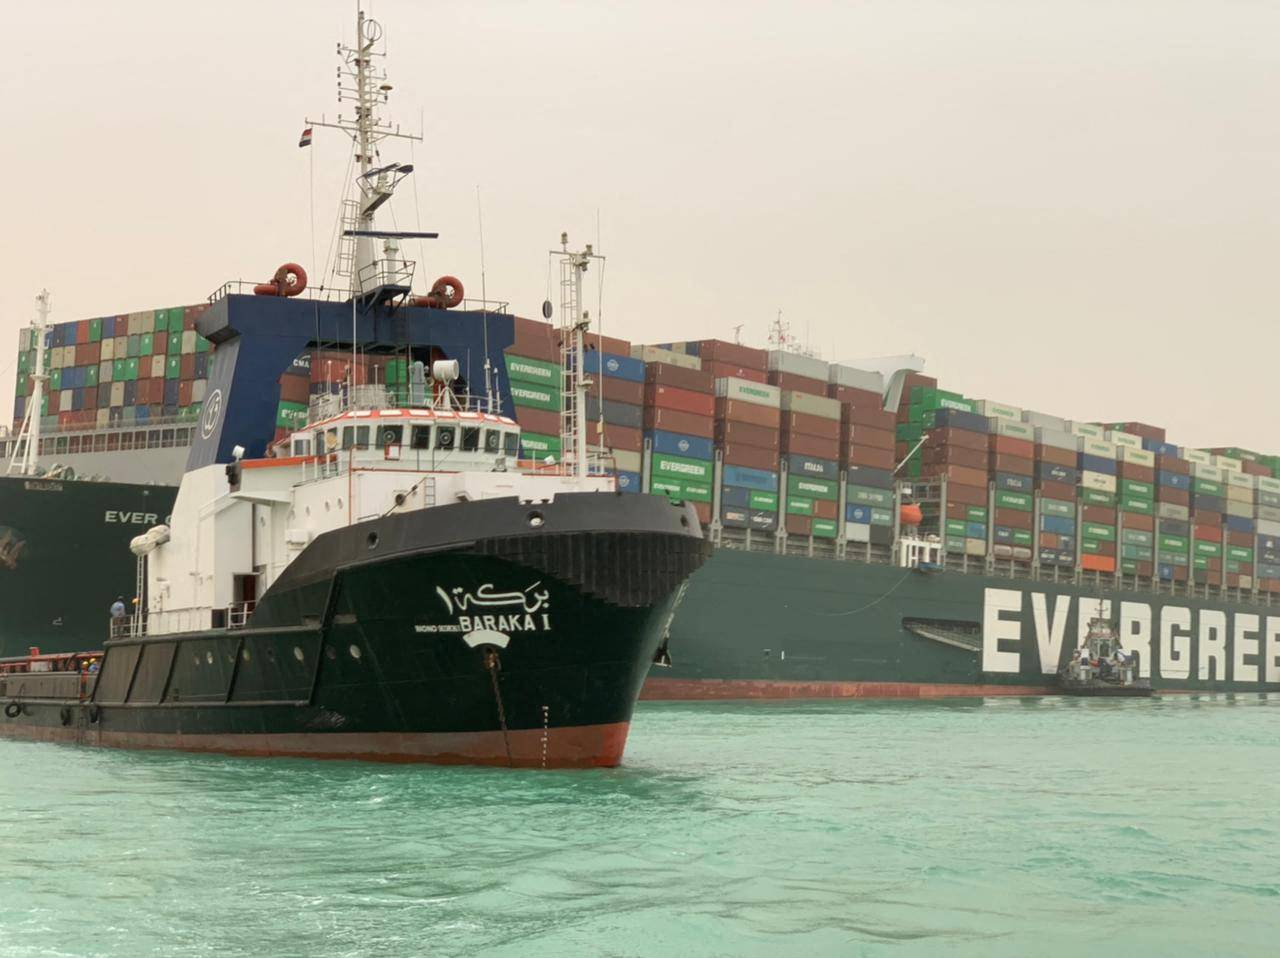 A handout picture released by the Suez Canal Authority on March 24, 2021 shows the MV Ever Given, operated by Taiwanese firm Evergreen, grounded in the Suez Canal, Egypt. | SUEZ CANAL / AFP-JIJI